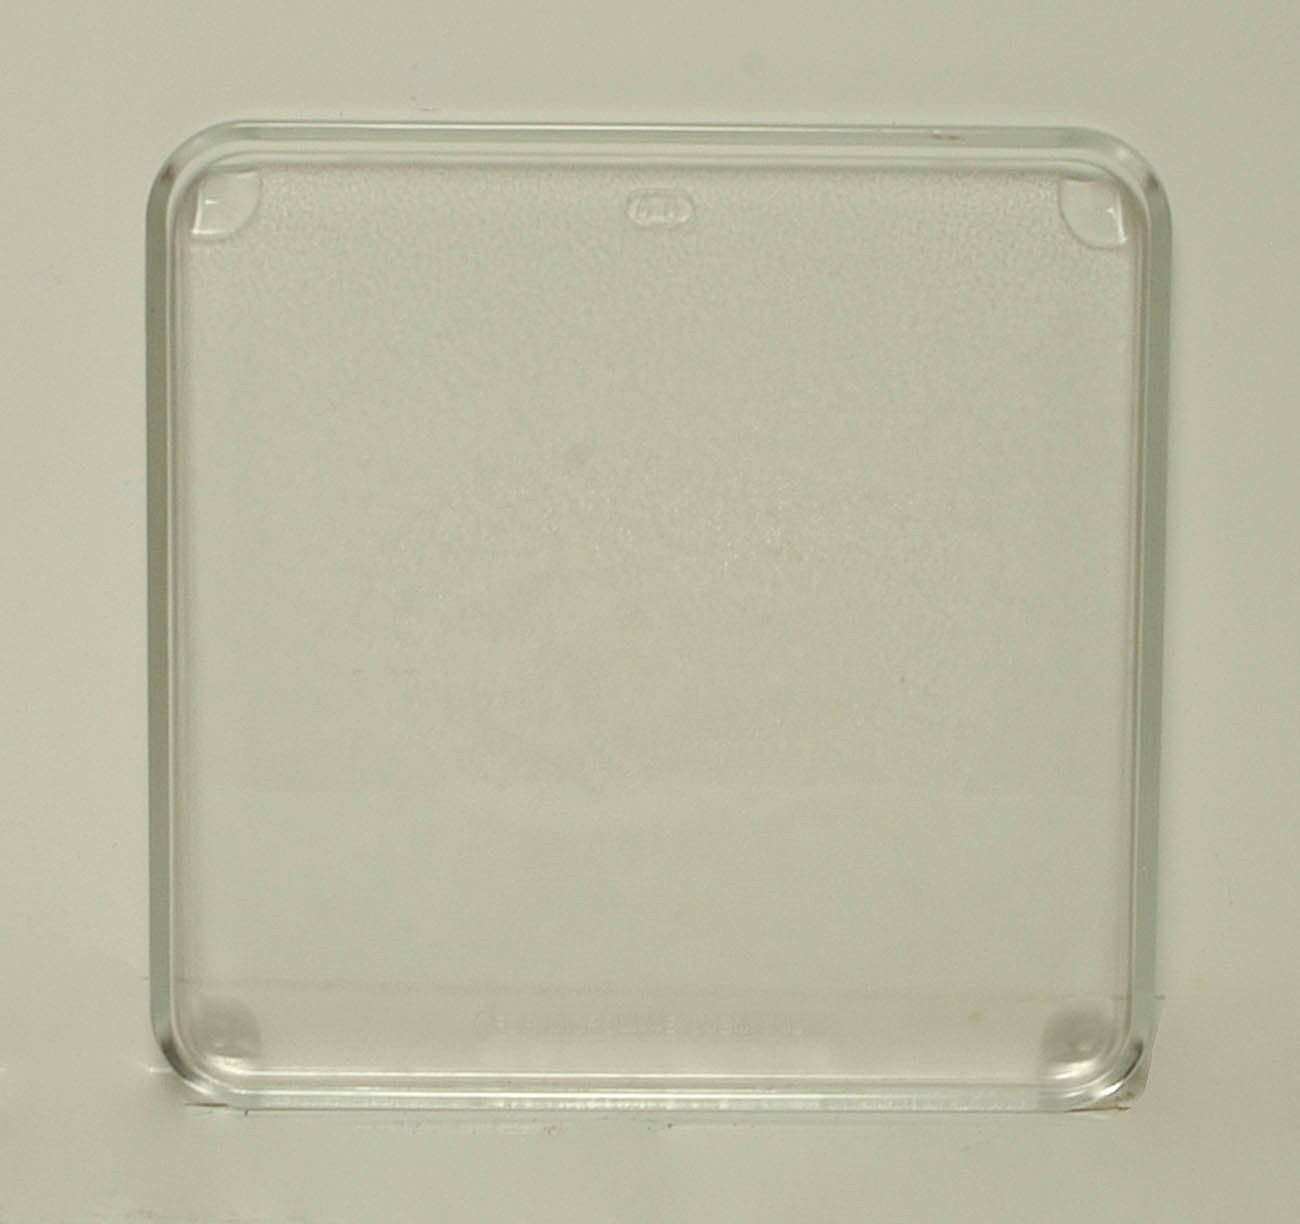 Replacement 10 3 4 x 10 3 4 inch glass microwave plate 40 for 10 x 40 window